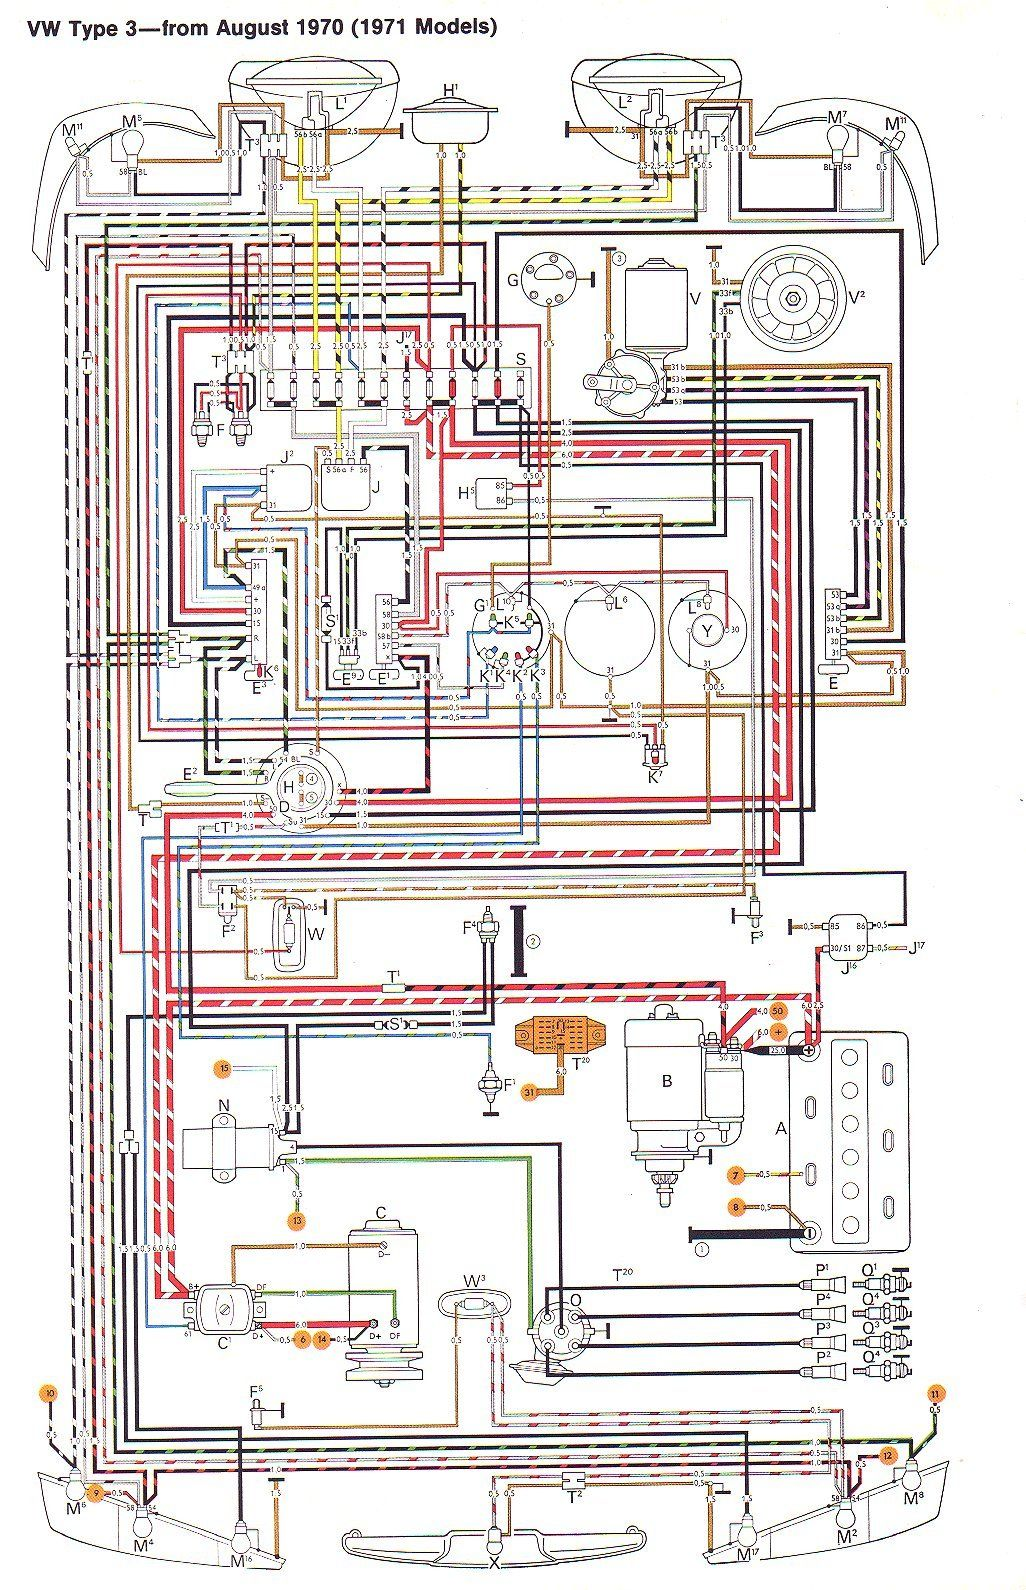 e0db58370f79a63d02d45f00cf63f44a 71 vw t3 wiring diagram ruthie pinterest volkswagen, engine 71 mustang wiring diagram at bayanpartner.co